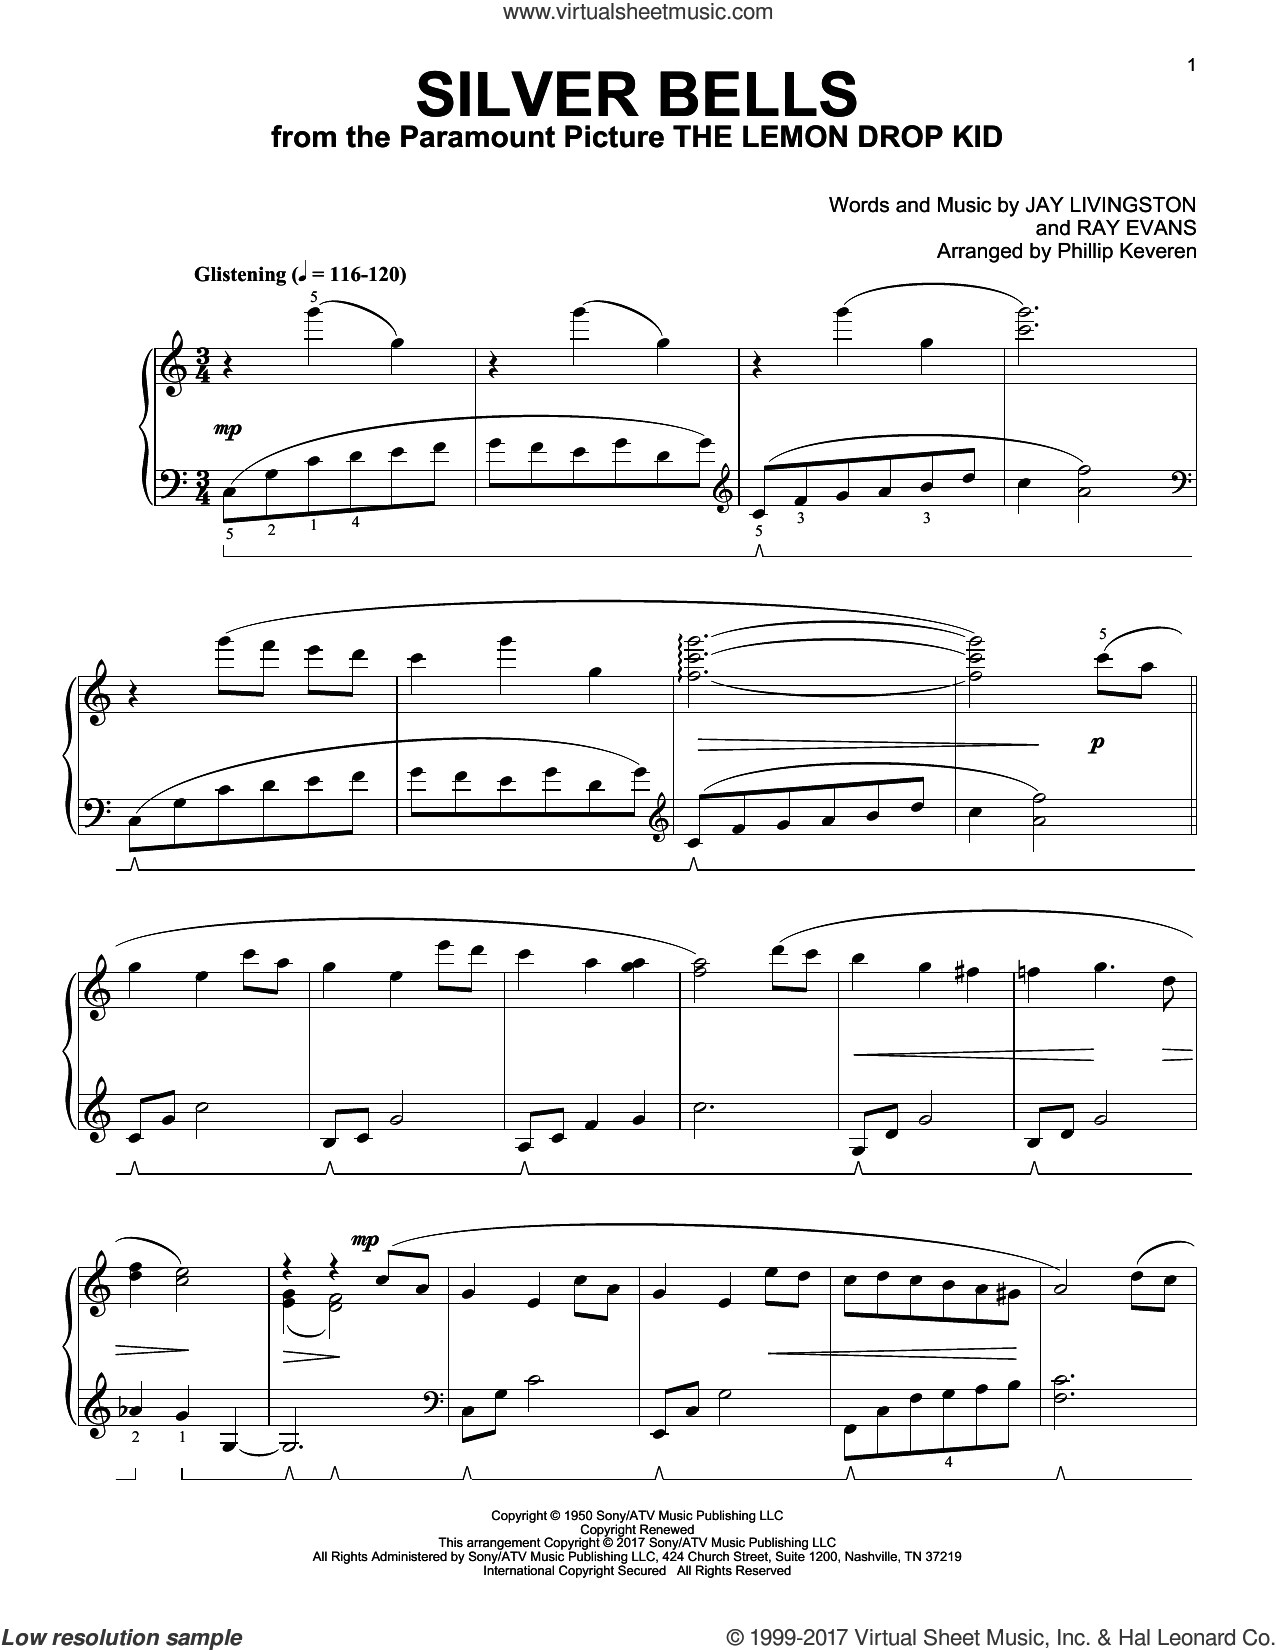 Silver Bells [Classical version] (arr. Phillip Keveren) sheet music for piano solo by Jay Livingston, Phillip Keveren and Ray Evans, intermediate skill level